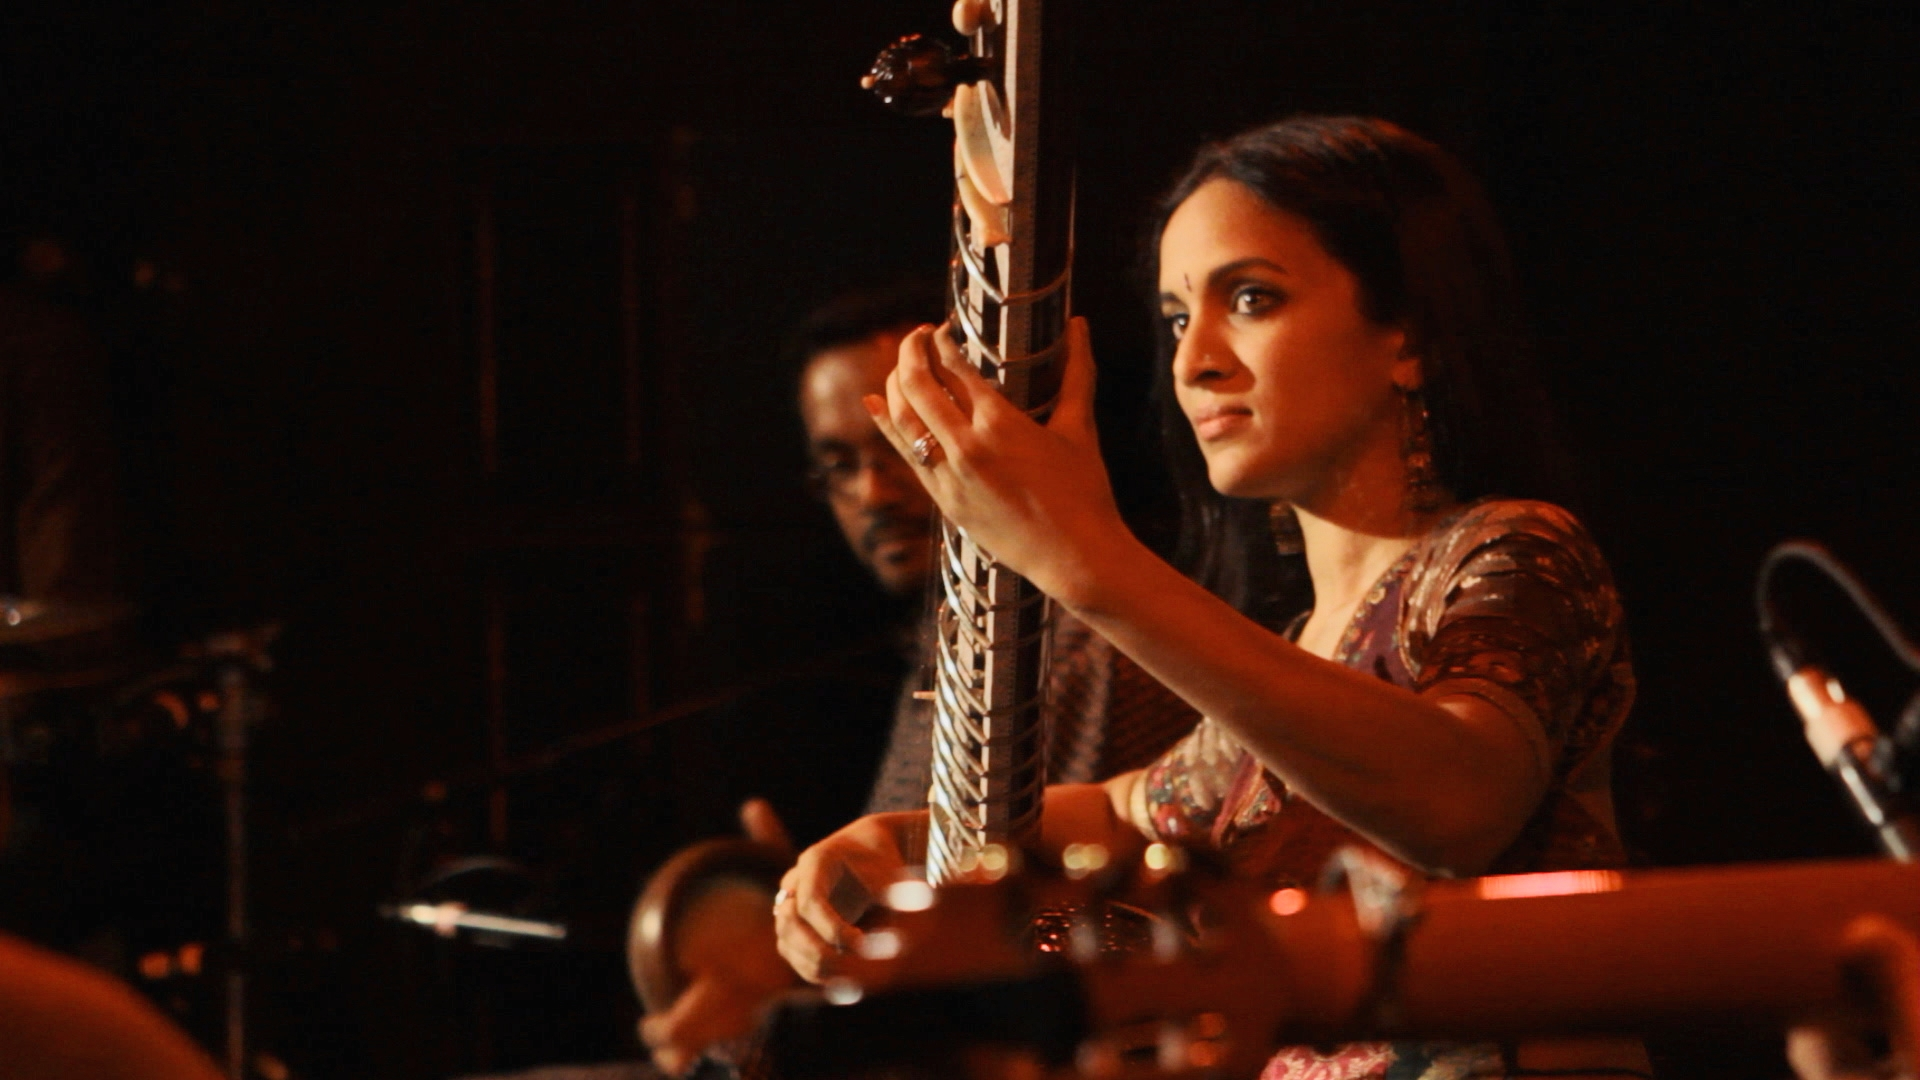 Quick Hits: Anoushka Shankar performs Si No Puedo Verla